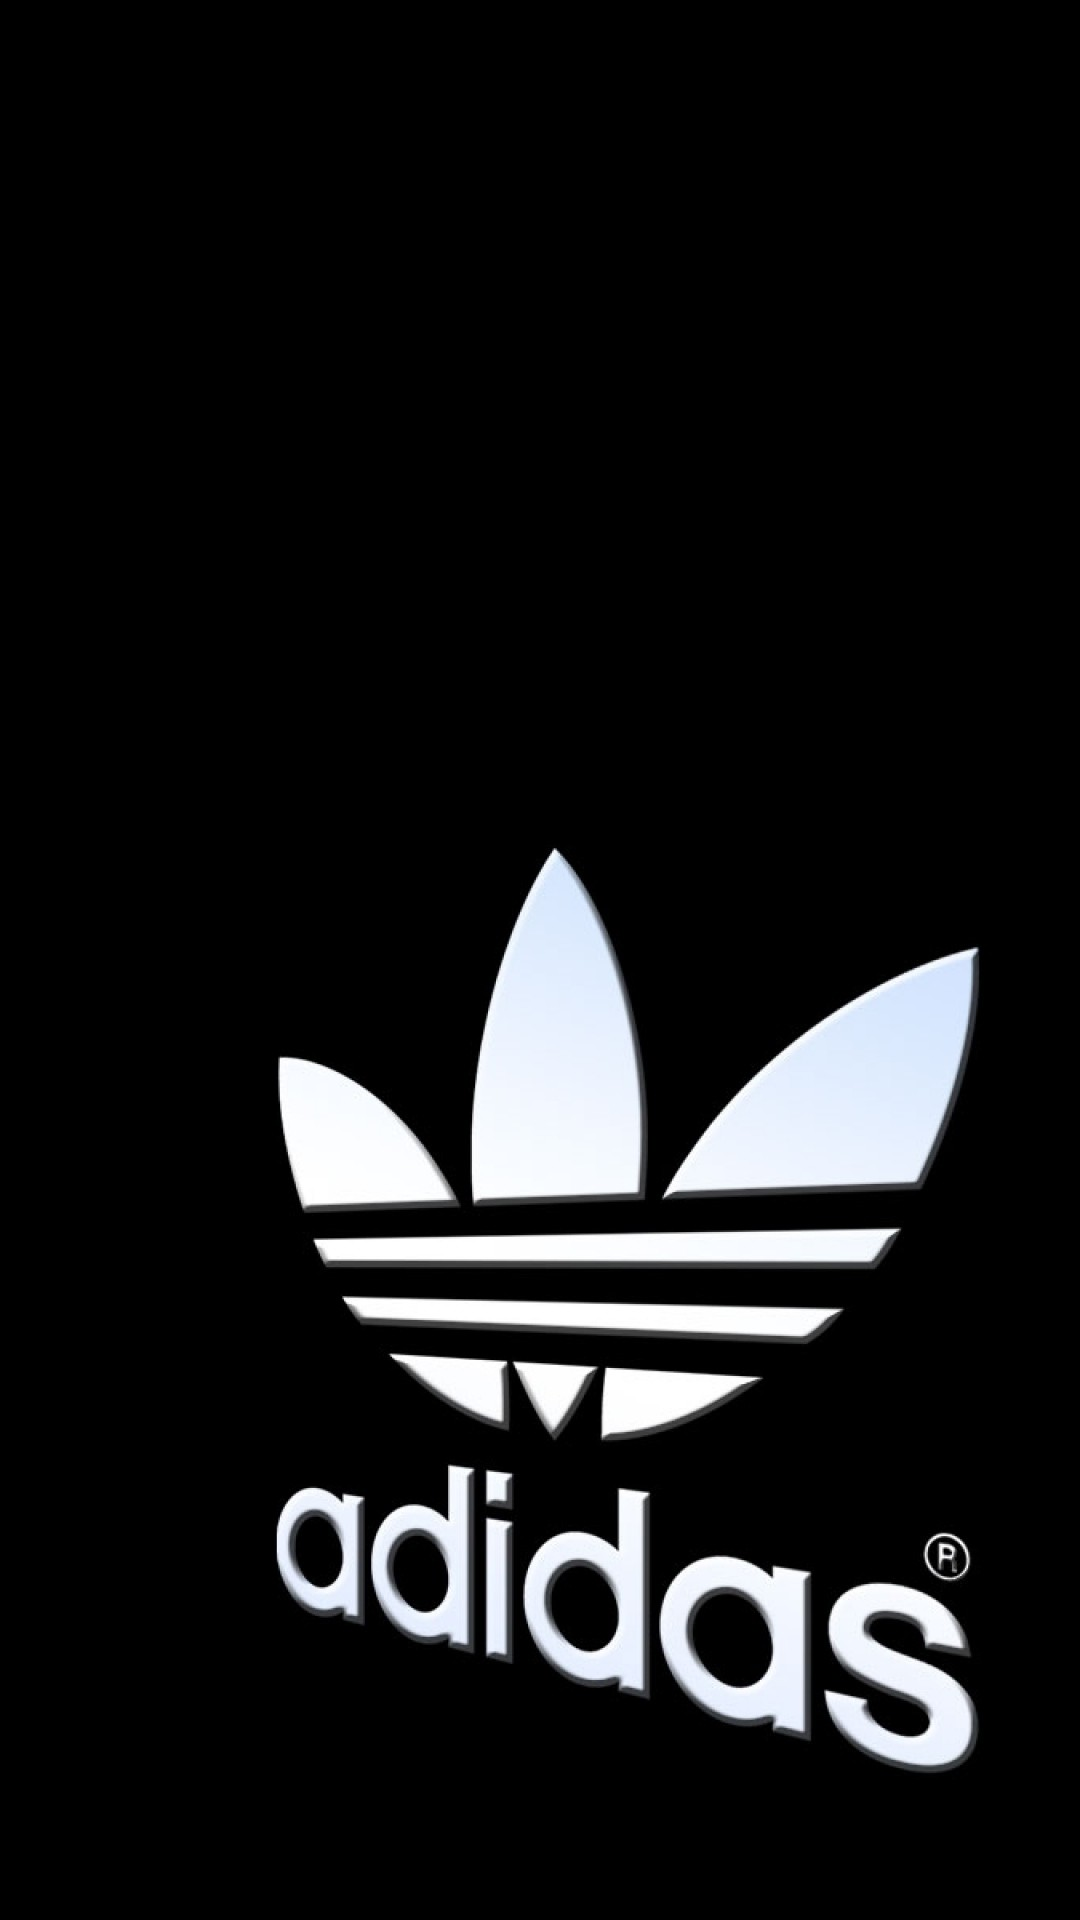 Galaxy S8 Quote Wallpaper Adidas Wallpapers 2018 75 Background Pictures